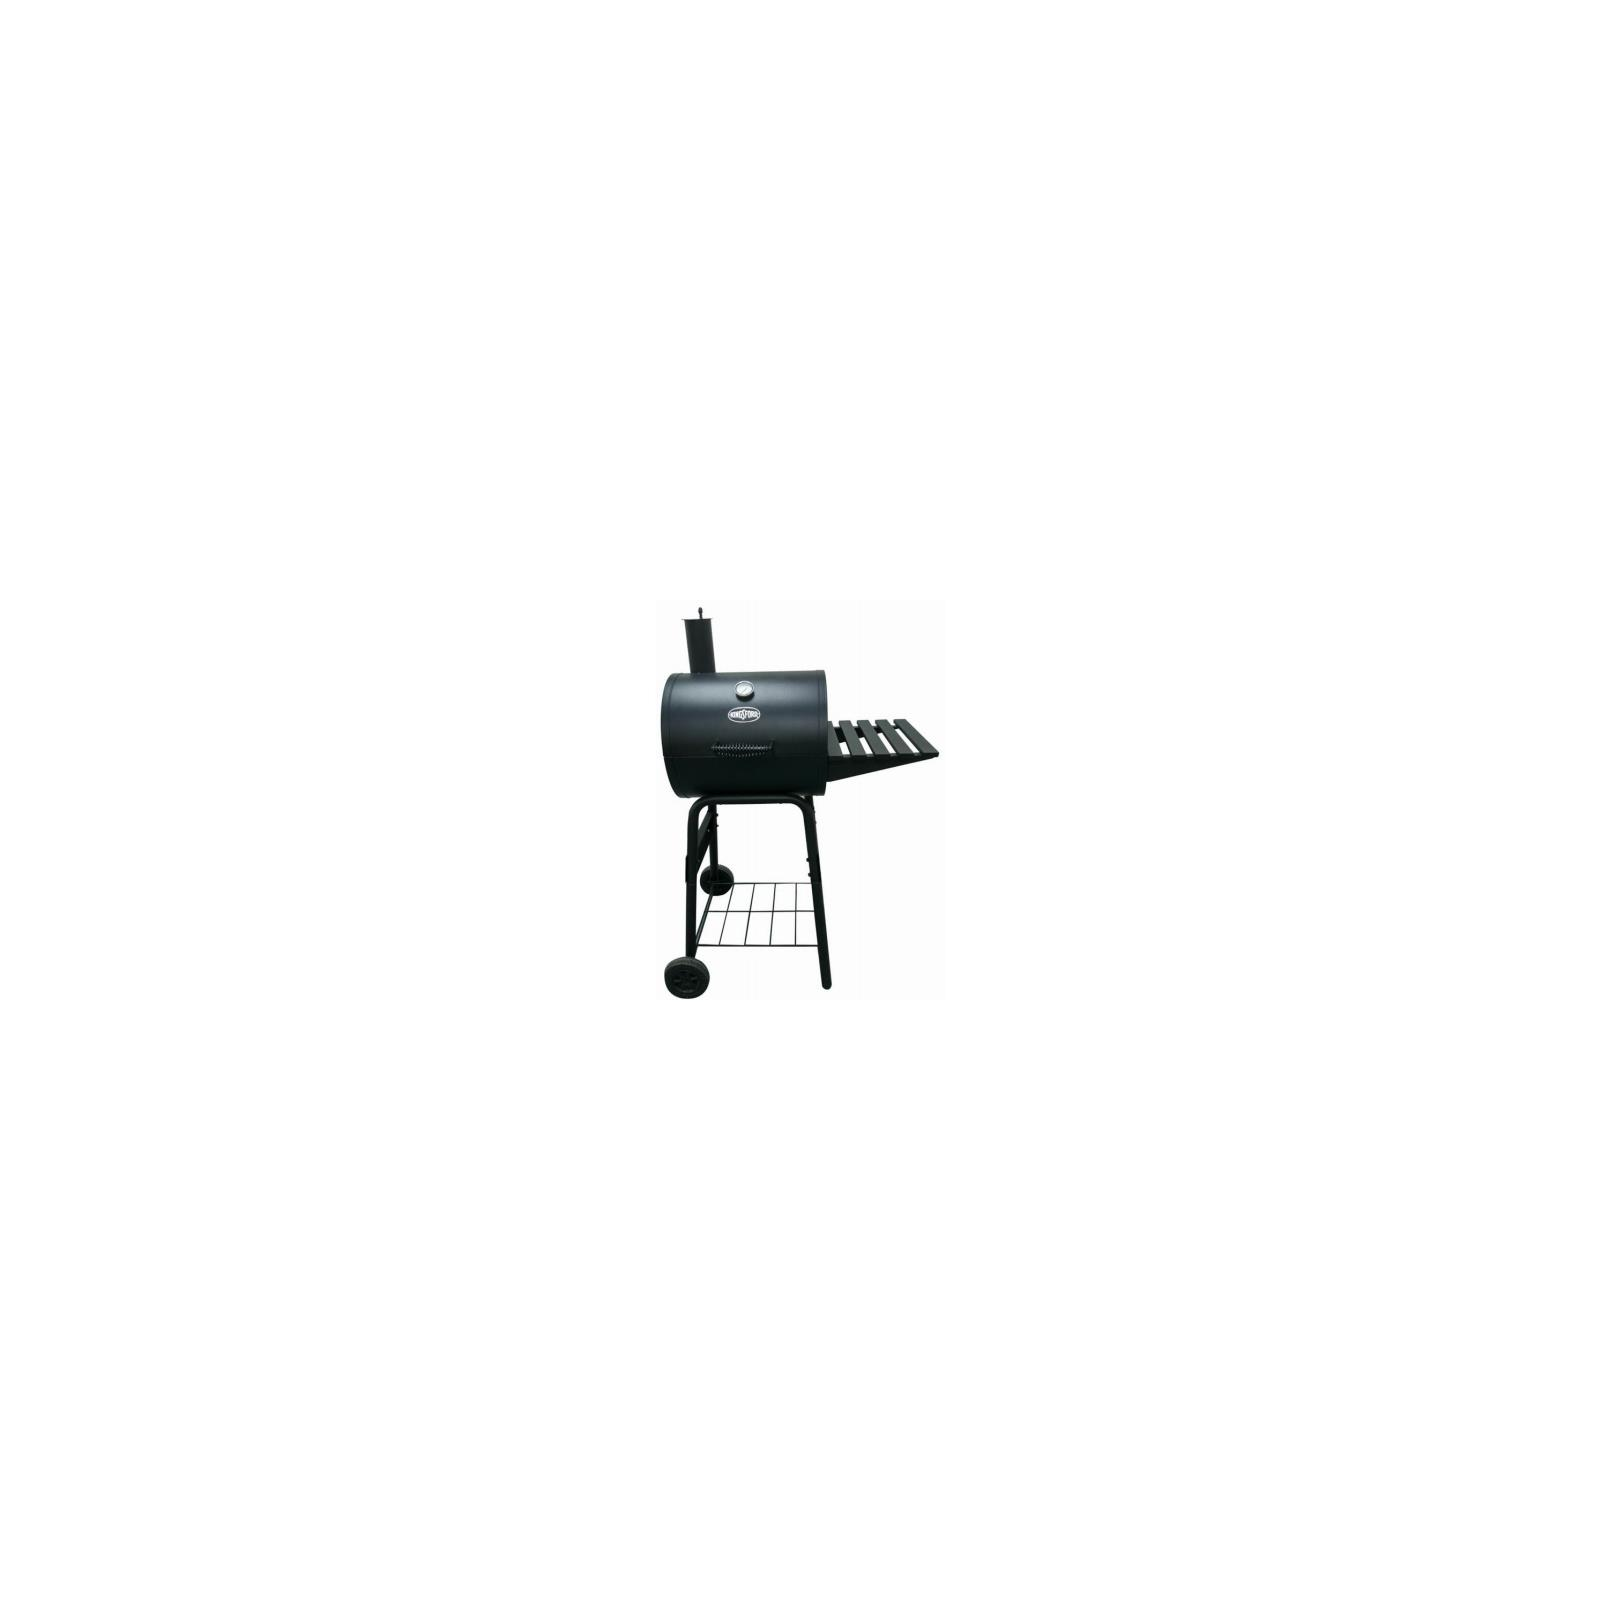 CG2051014-KF Barrel Charcoal Grill, 225-Sq. In. Cooking Surface - Quantity 1